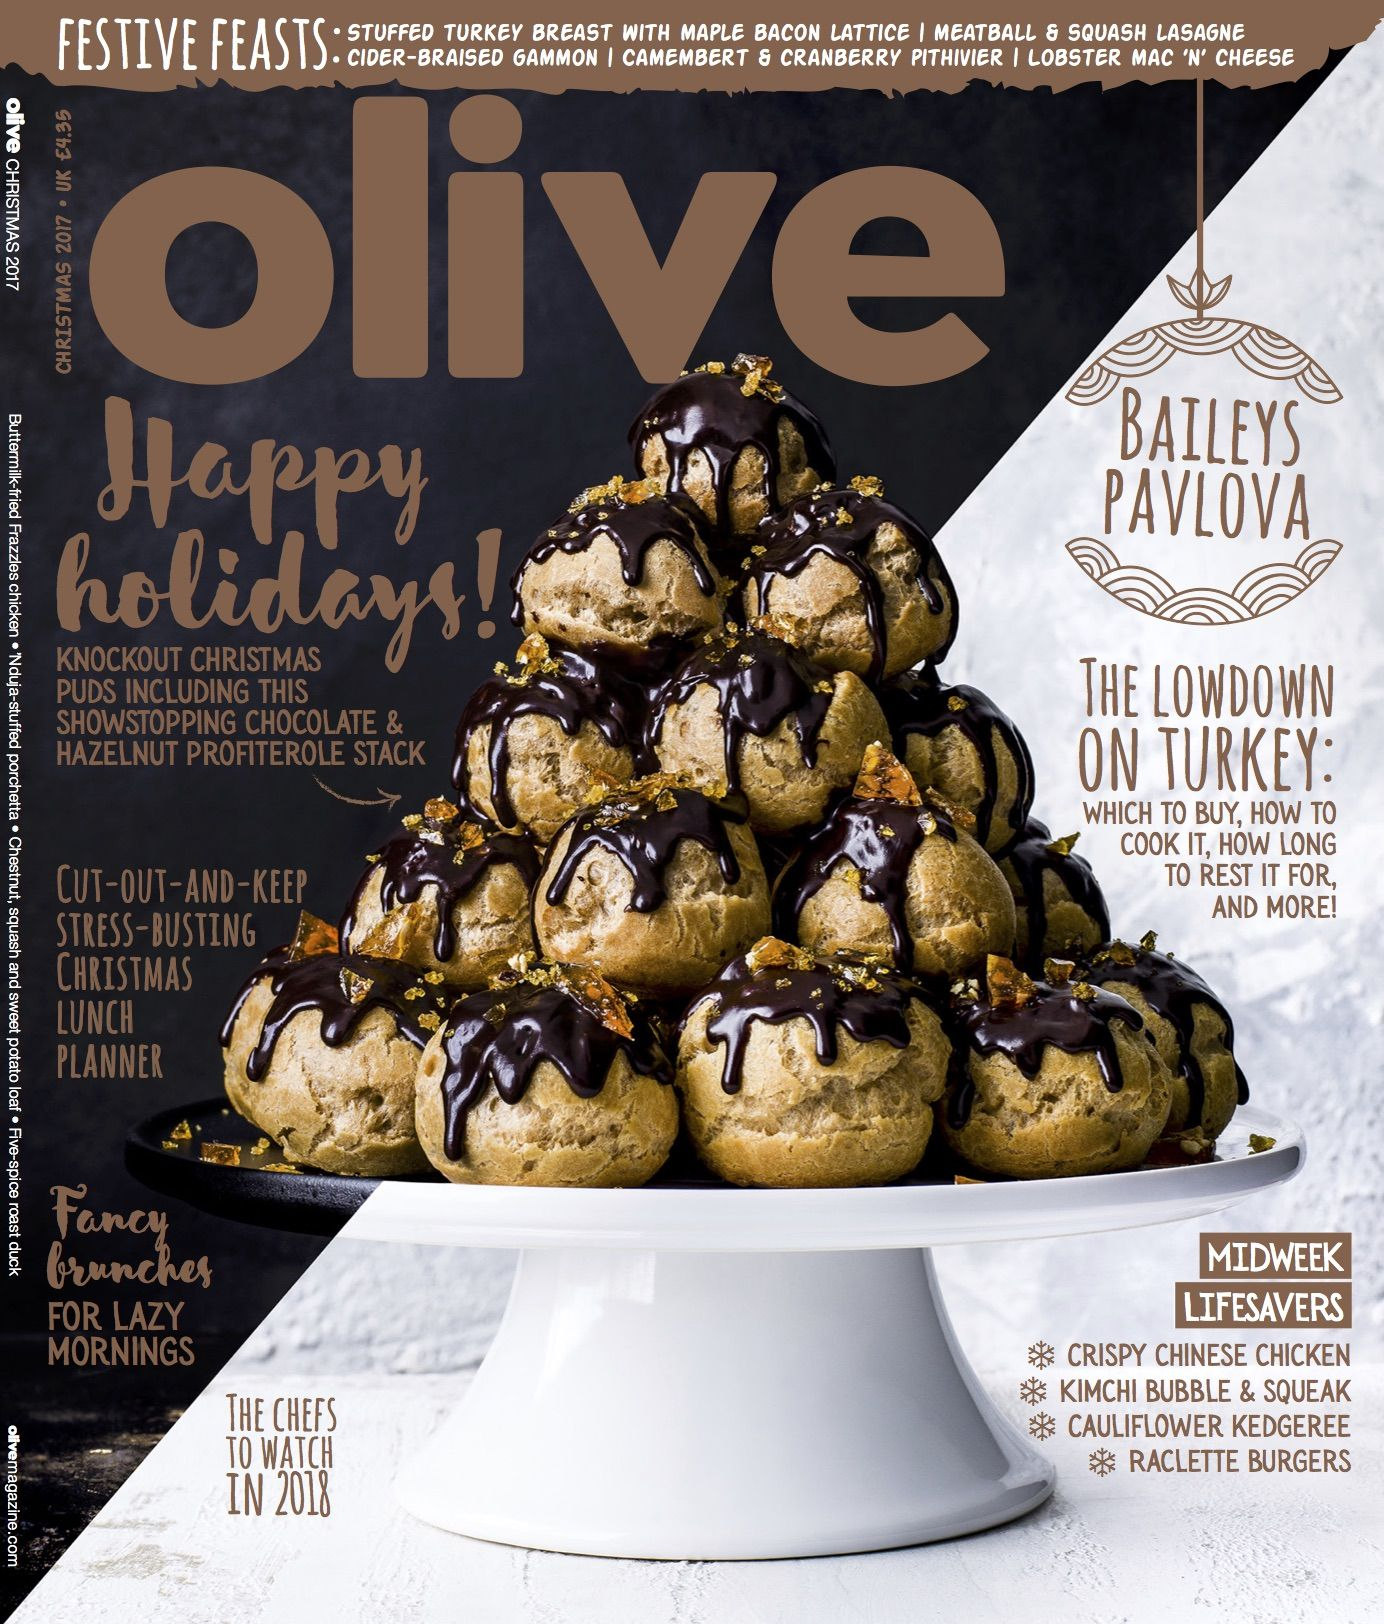 17 reasons why this is the best christmas magazine ever christmas 17 reasons why this is the best christmas magazine ever pdf magazinesprofiterolechristmas dessert recipeschristmas forumfinder Images